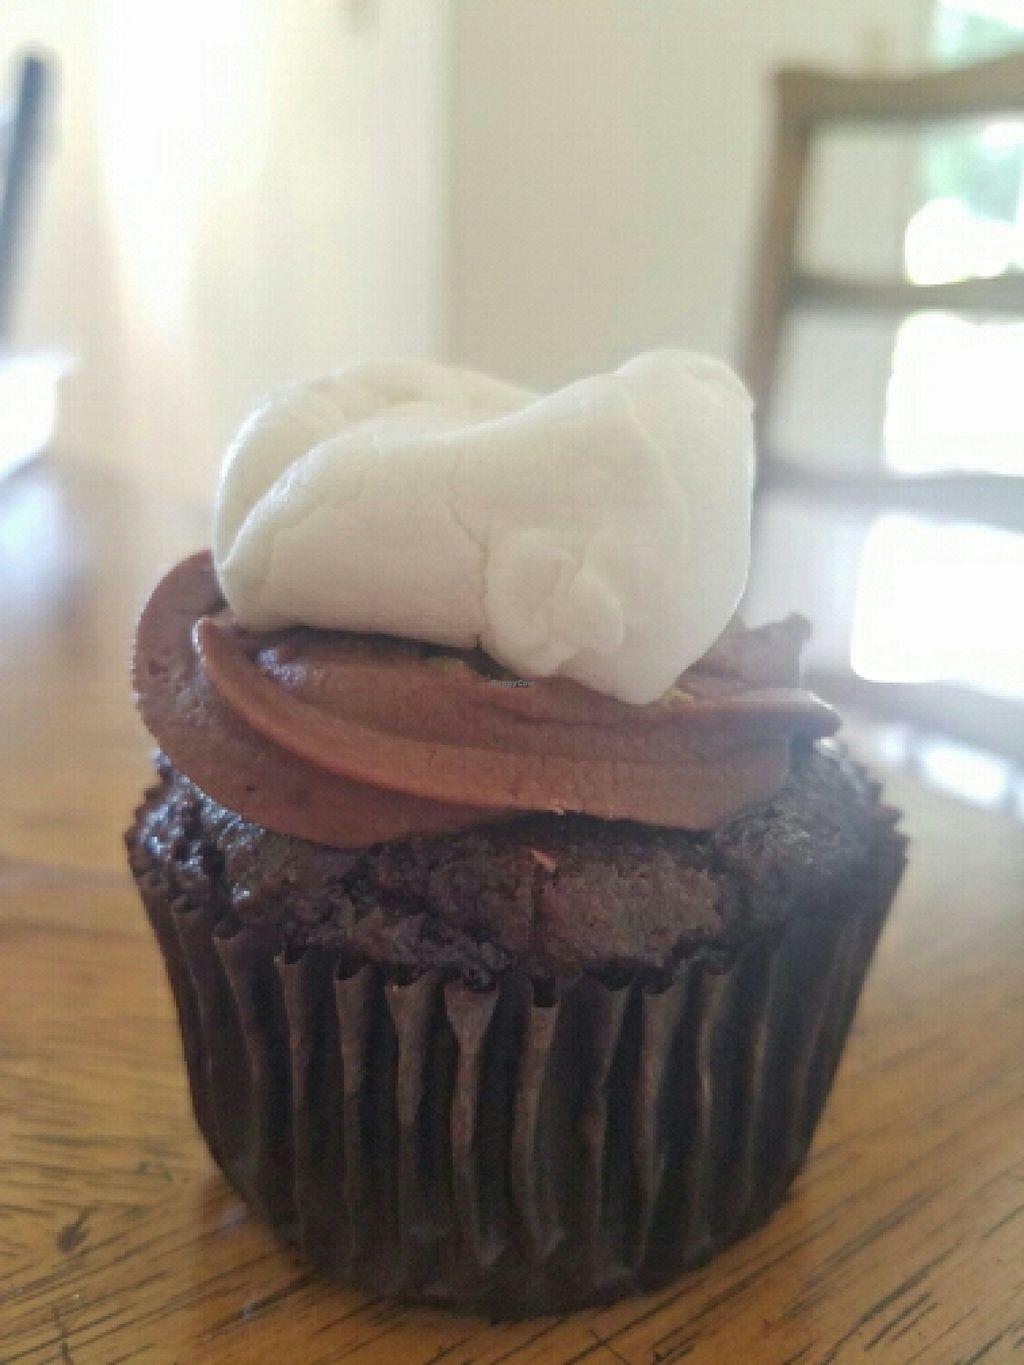 "Photo of Sinful Confections  by <a href=""/members/profile/YadiGarc%C3%ADa"">YadiGarcía</a> <br/>delicious smore cupcake <br/> June 6, 2016  - <a href='/contact/abuse/image/74659/152560'>Report</a>"